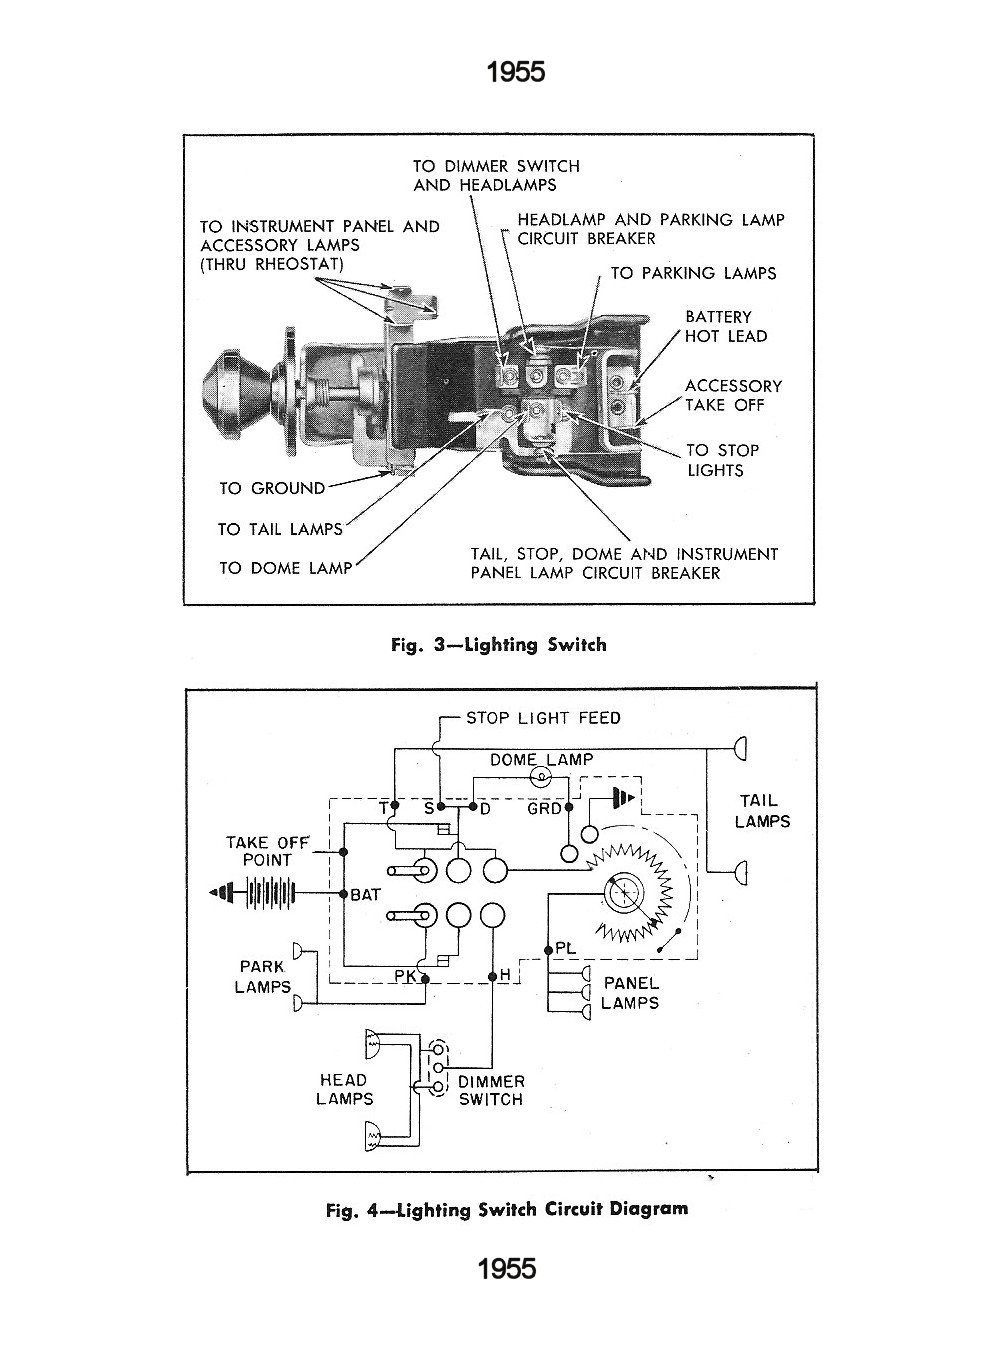 Chevy Wiring Diagrams A Lamp Diagram 1955 Lighting Switch Circuit